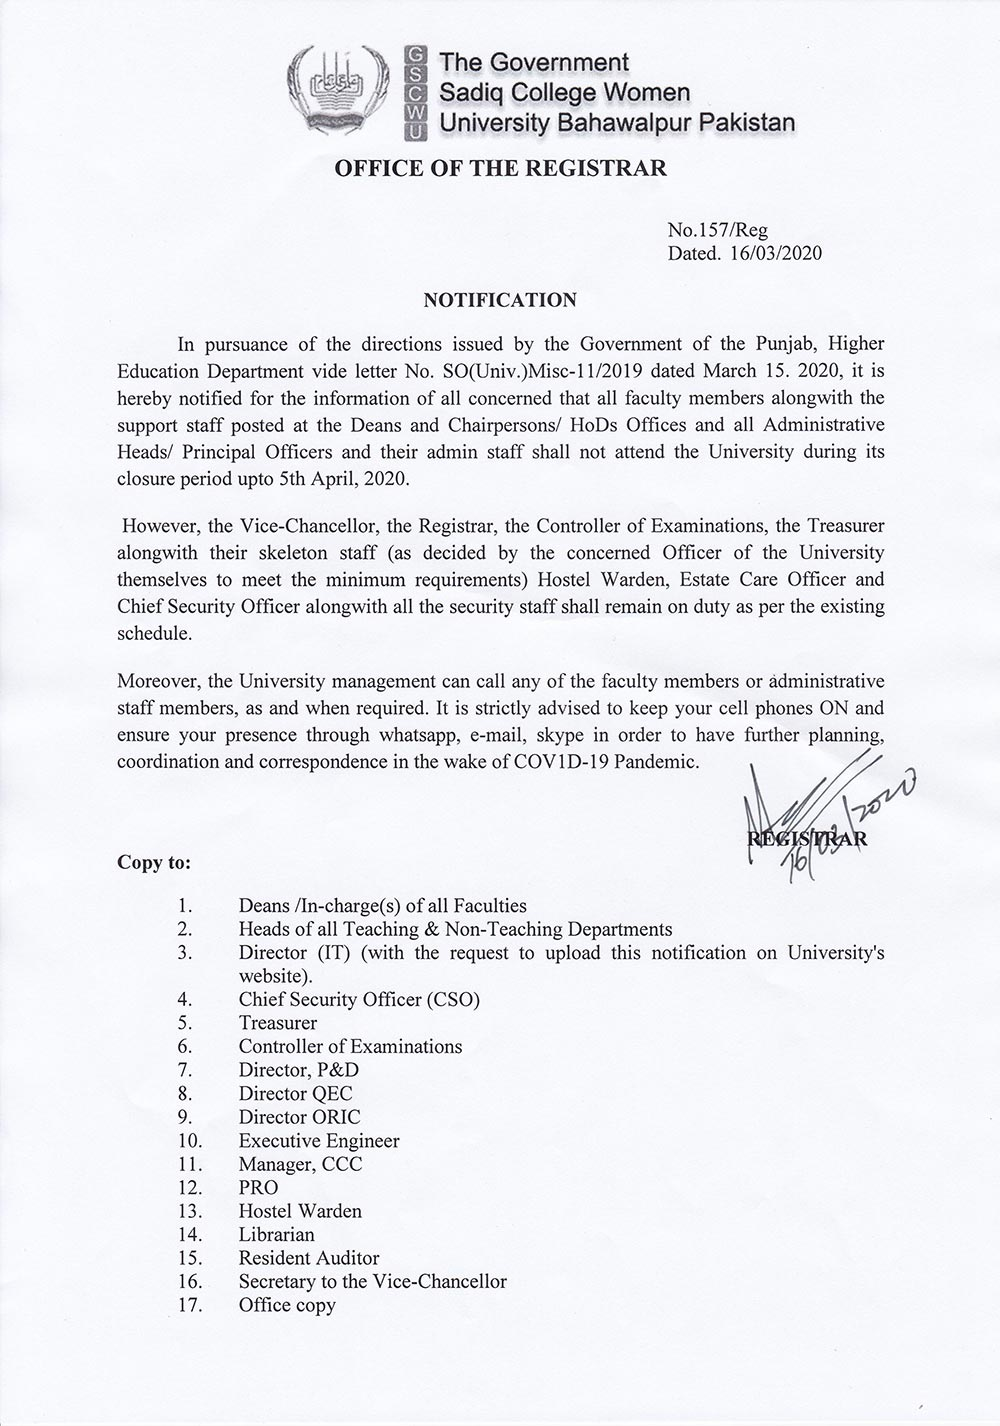 GSCWU Bahawalpur shall remain closed for all academic and research activities from March 14, 2020 till April 05, 2020